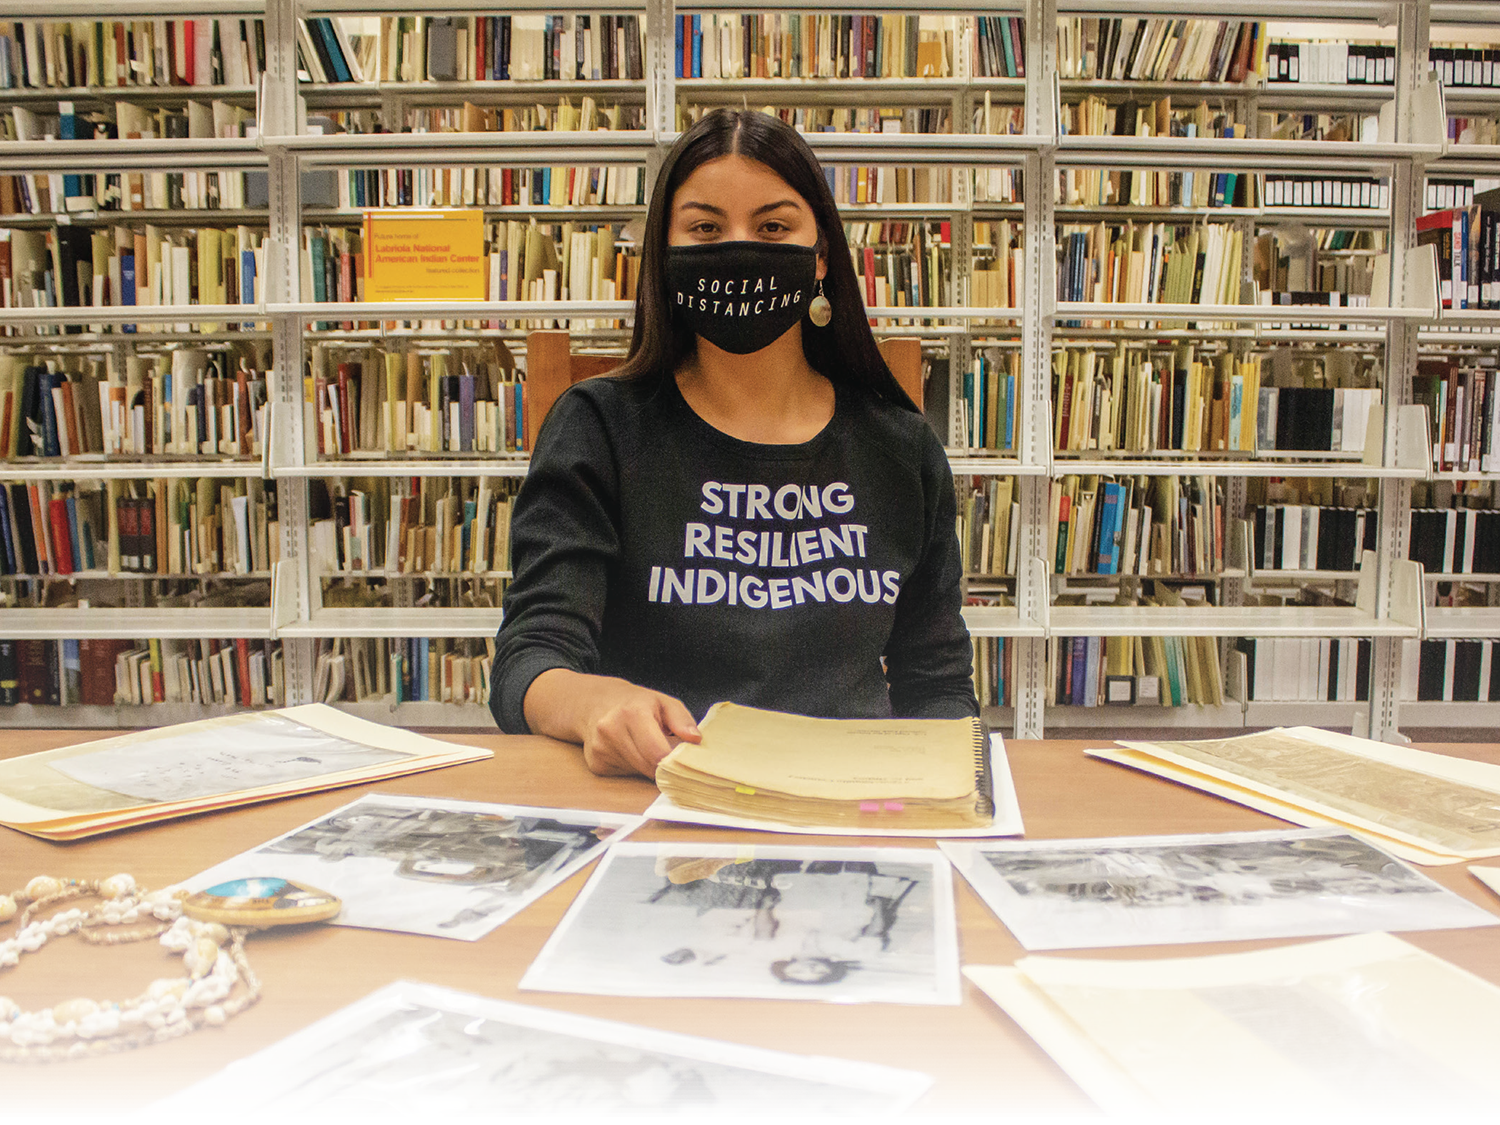 """Lourdes is sitting at a table sprawled with documents at ASU's Labriola Center. In the background are rows of books. Lourdes is wearing a black """"Strong Resilient Indigenous"""" shirt and a black face mask."""